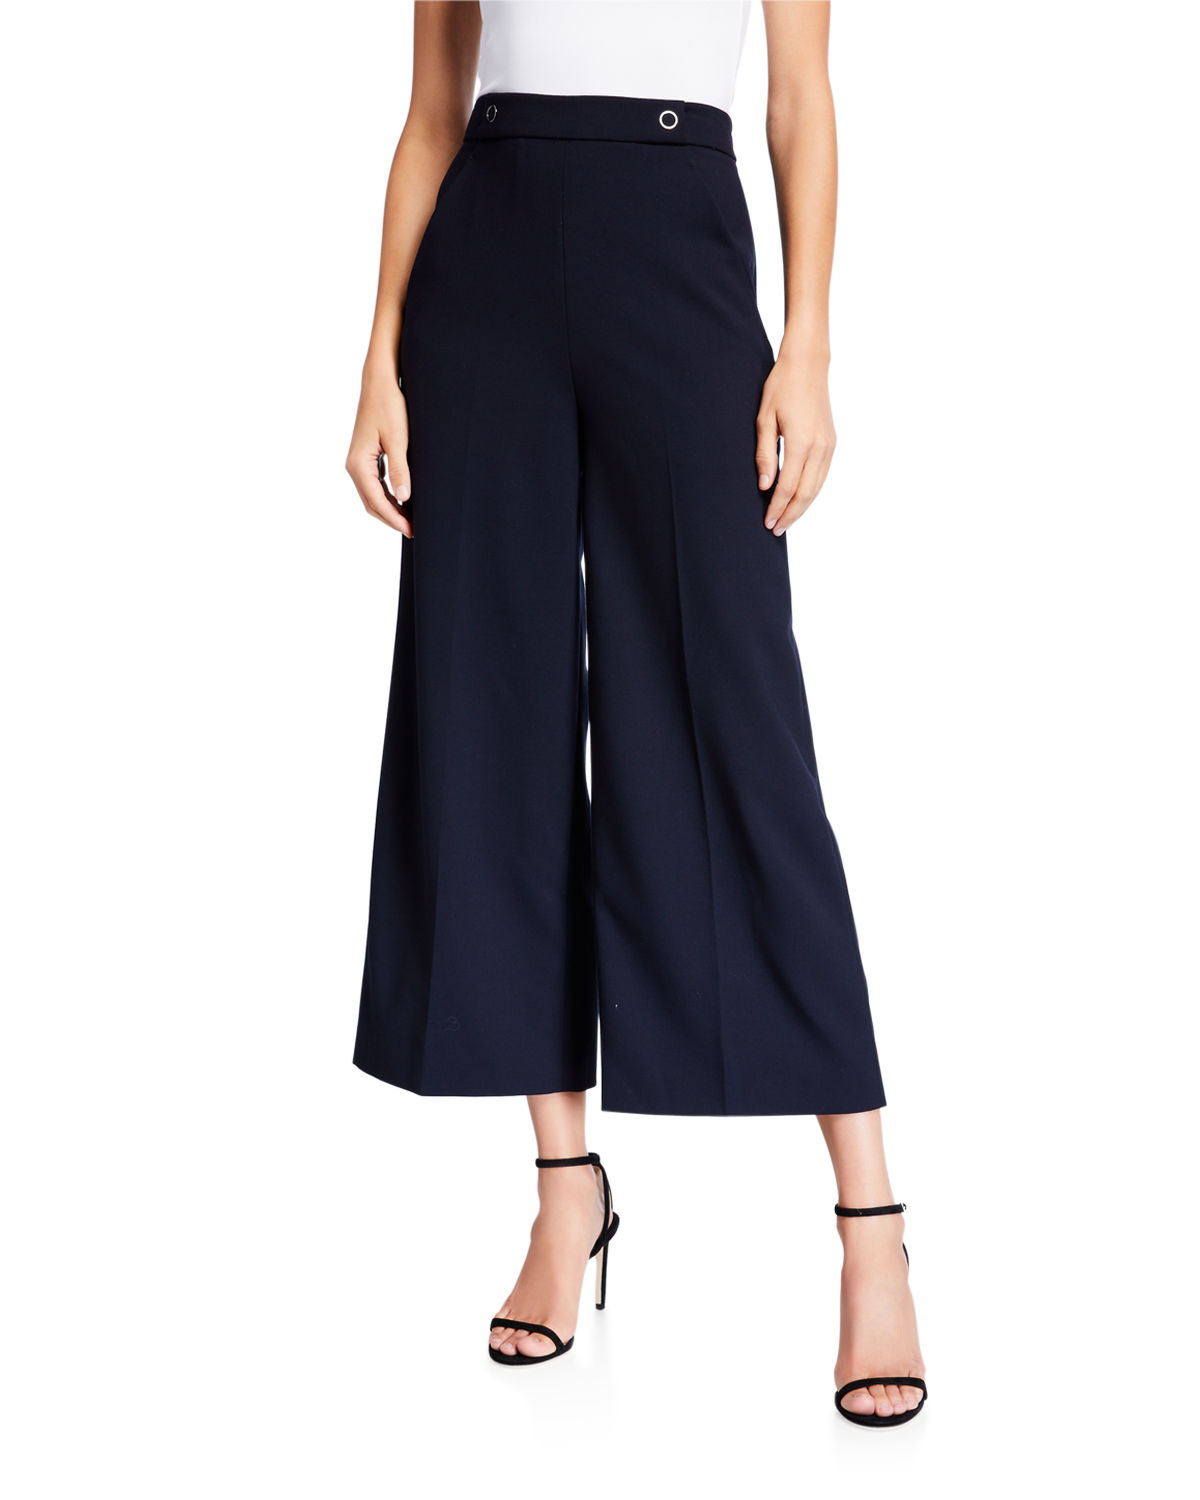 Elie Tahari Pants JUNO WIDE-LEG CROP PANTS